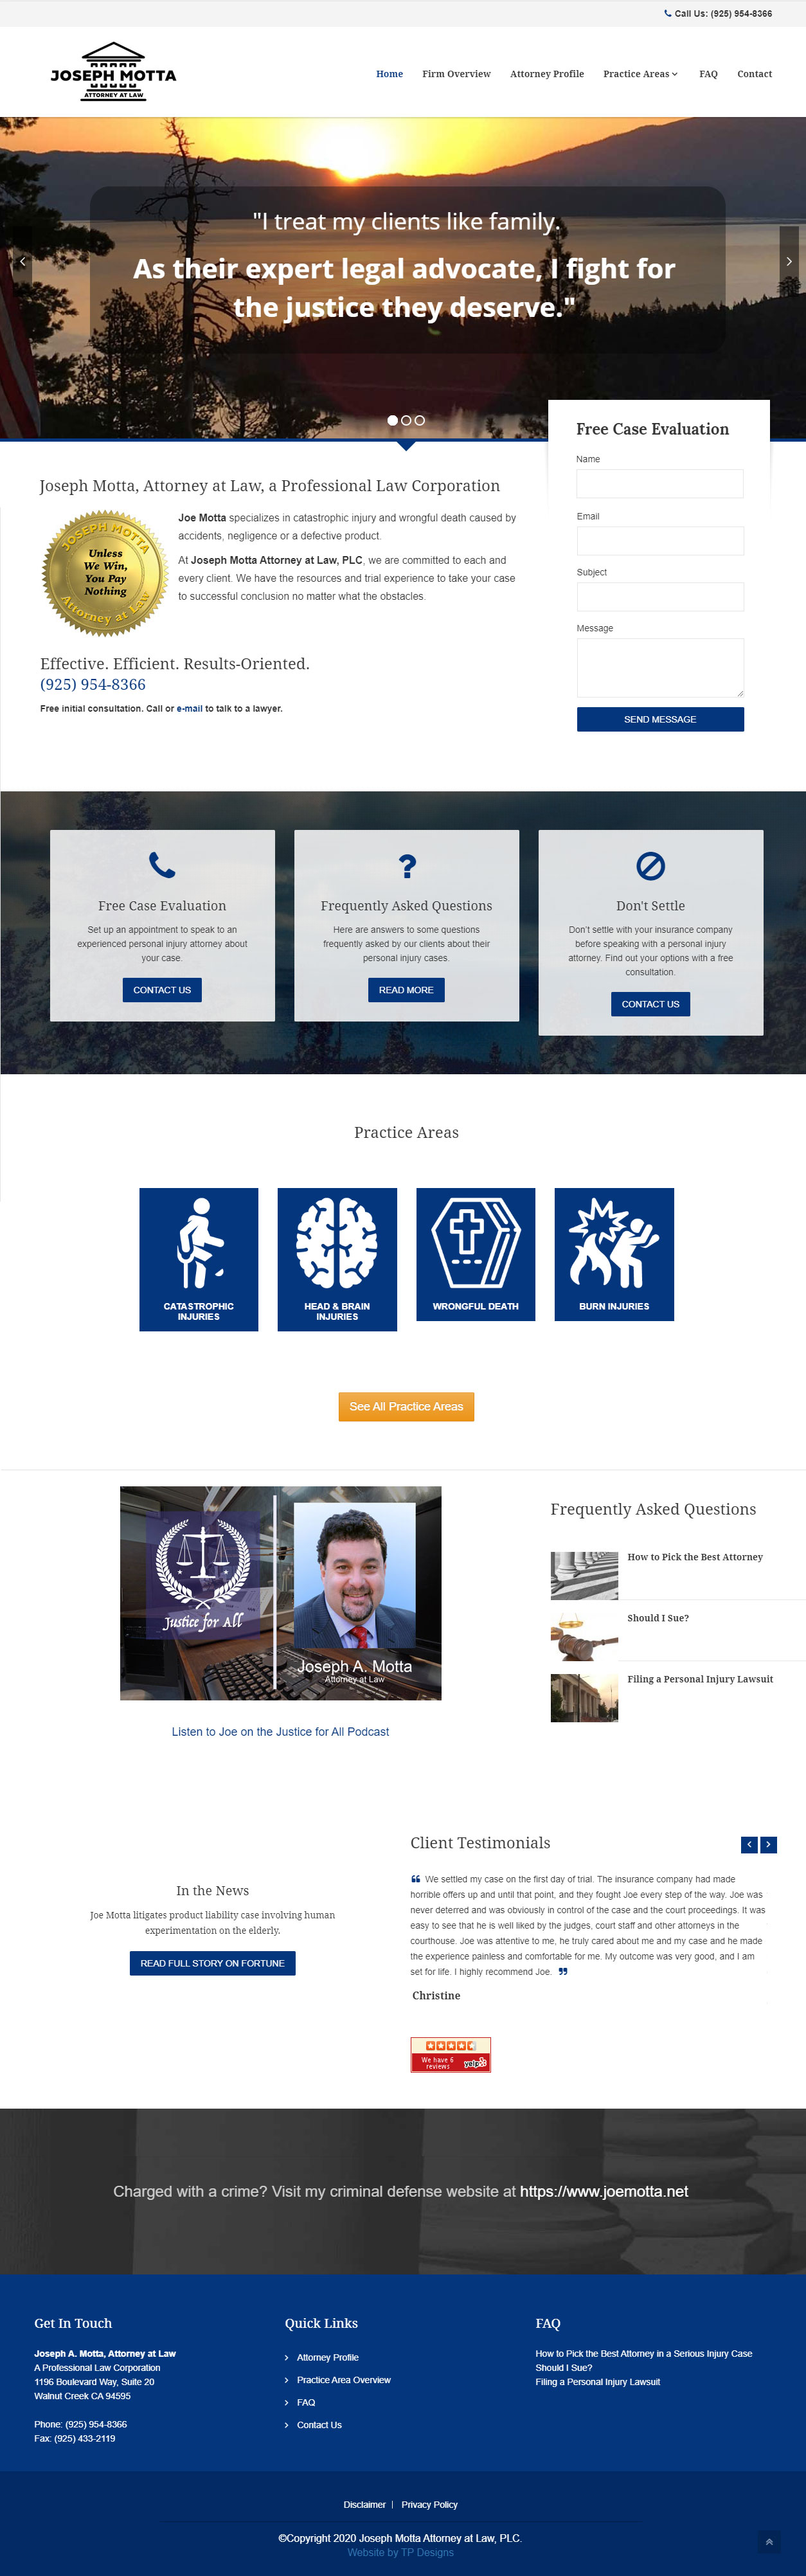 Serious Injury Attorney Web Design